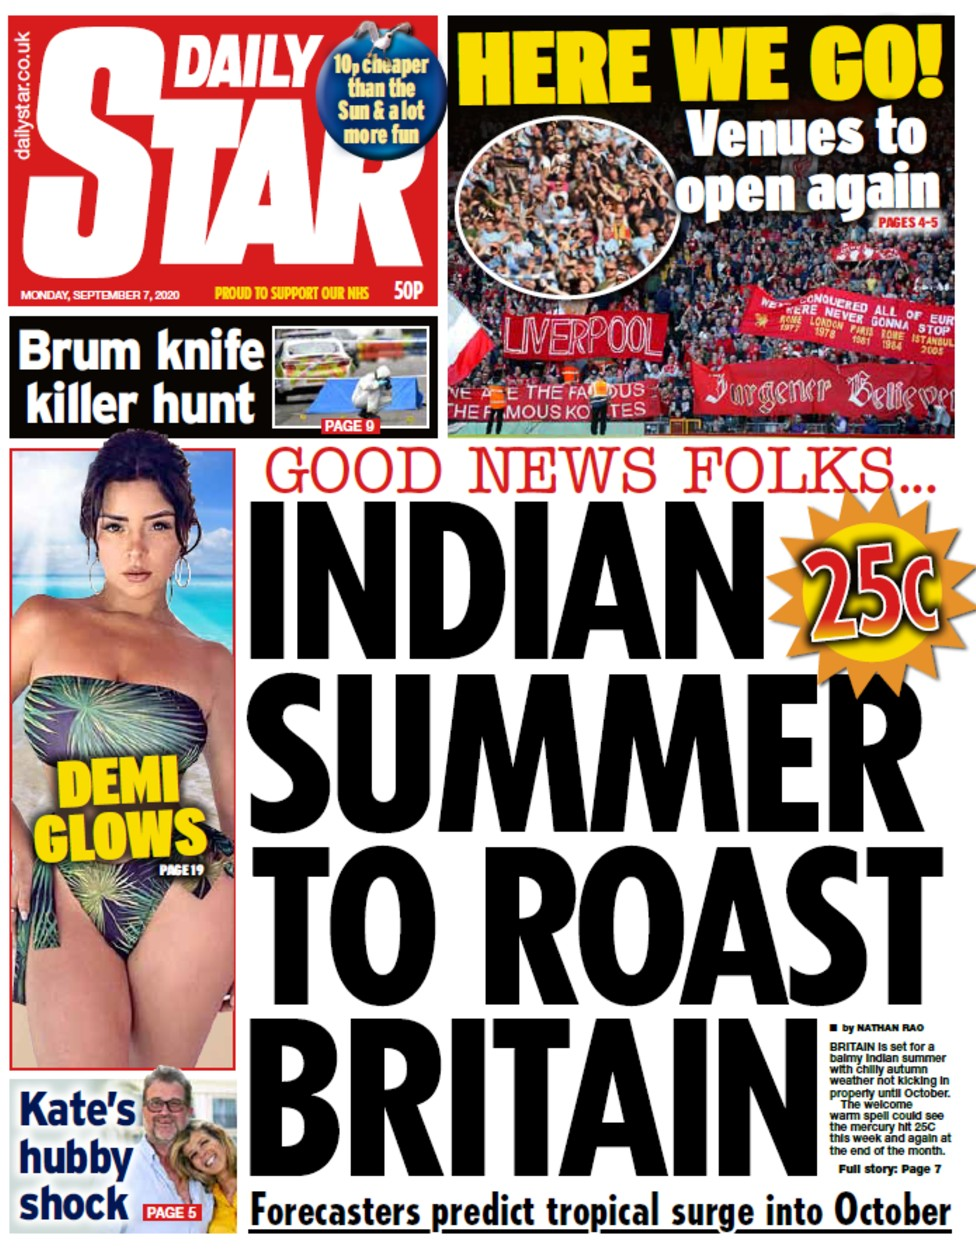 Daily Star front page, 7/9/20